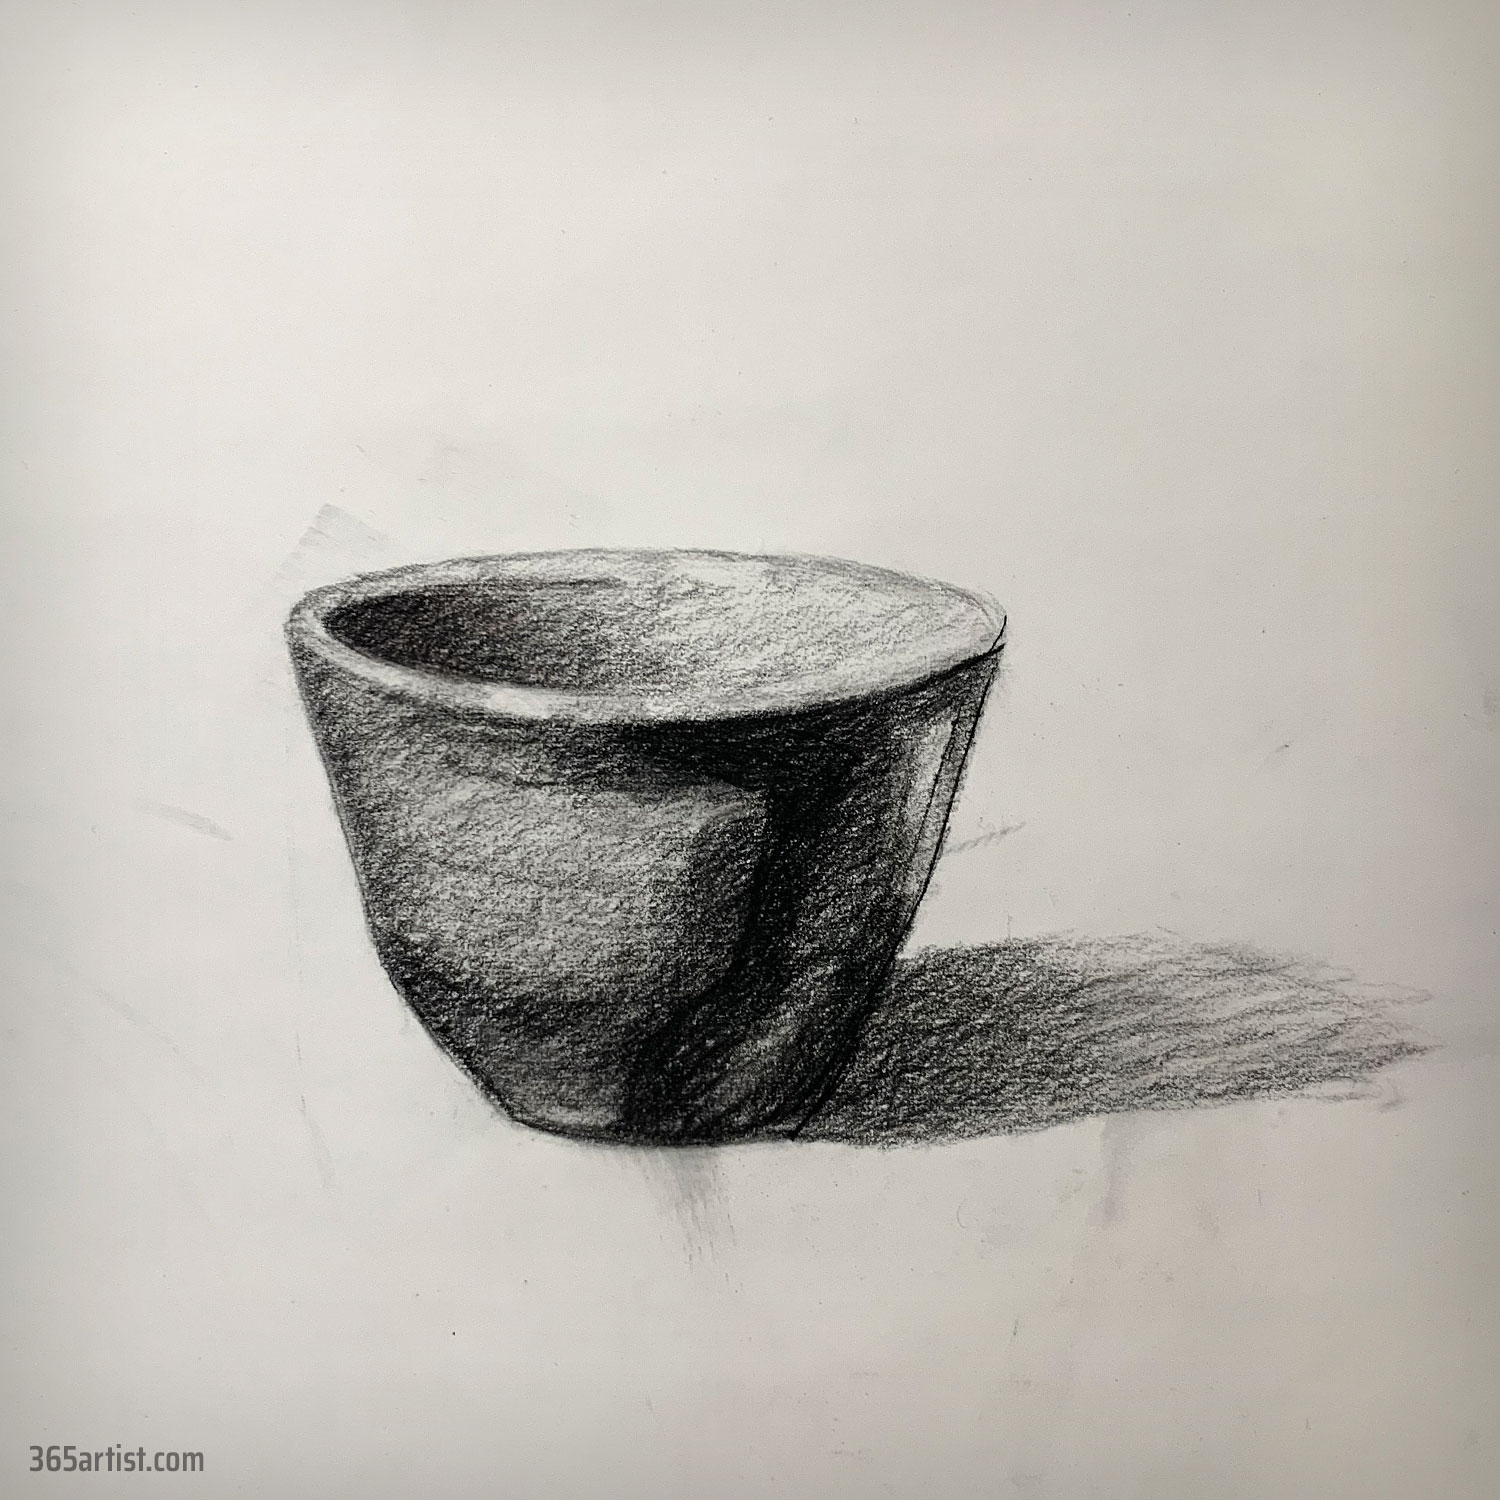 charcoal drawing of a bowl